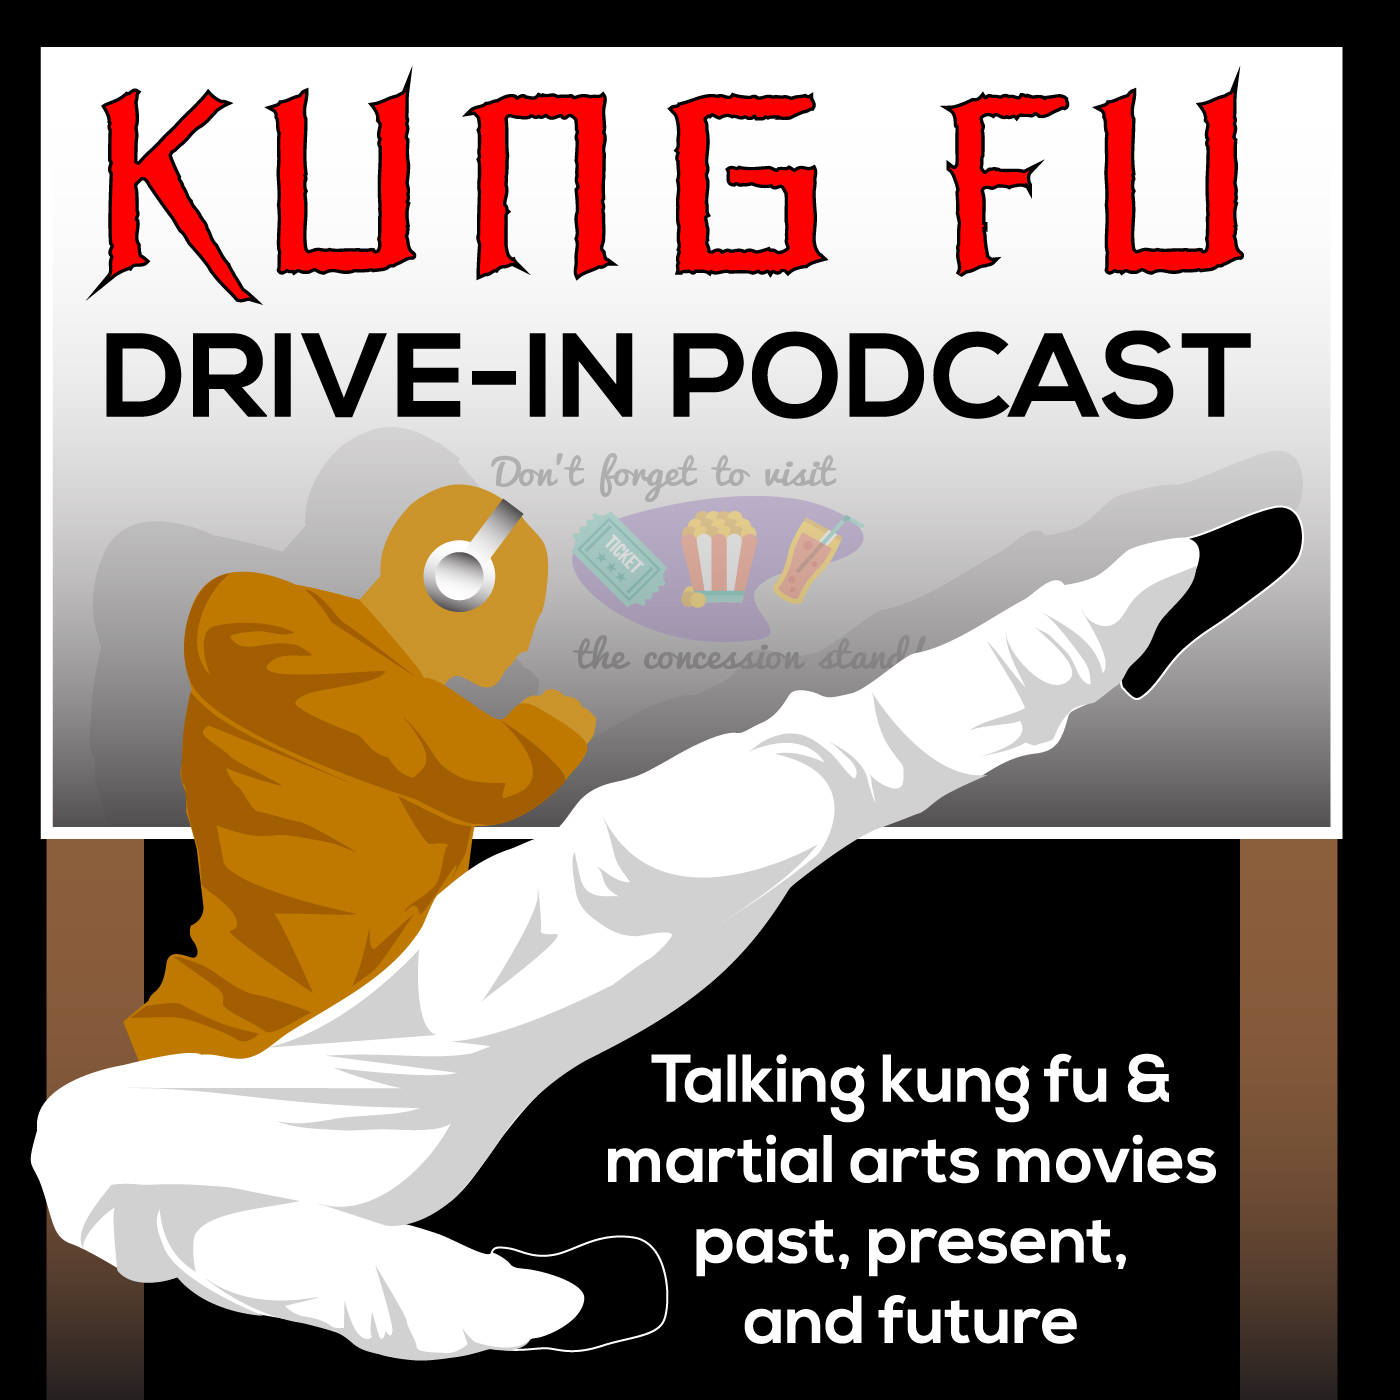 Kung Fu Drive-In Podcast show art